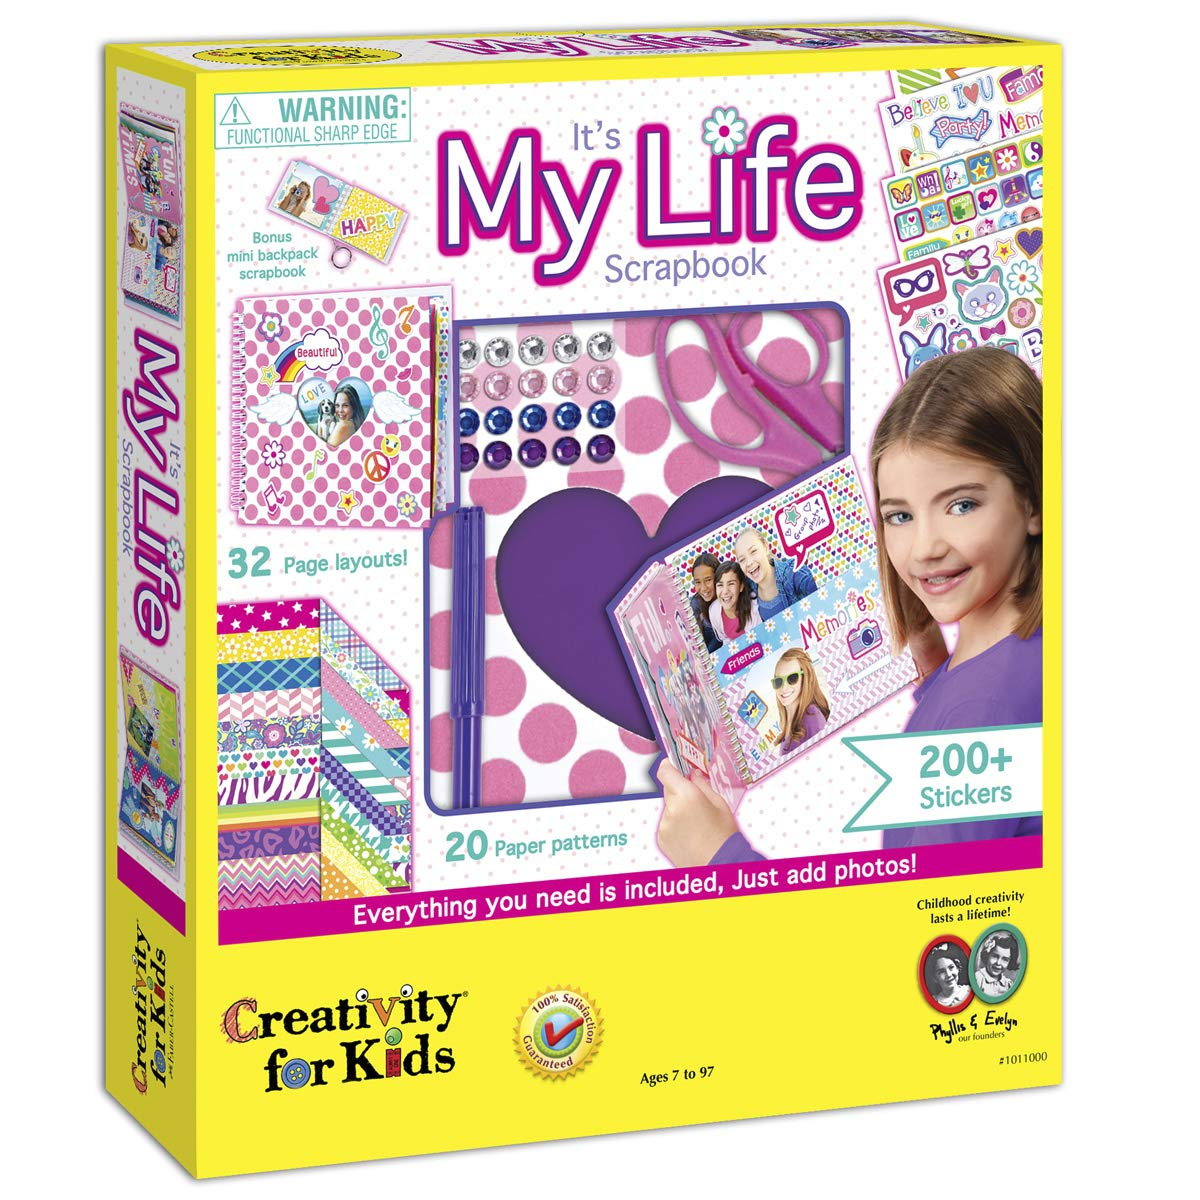 Great Christmas Gifts For 10 Year Old Girls - UR Kid\'s World